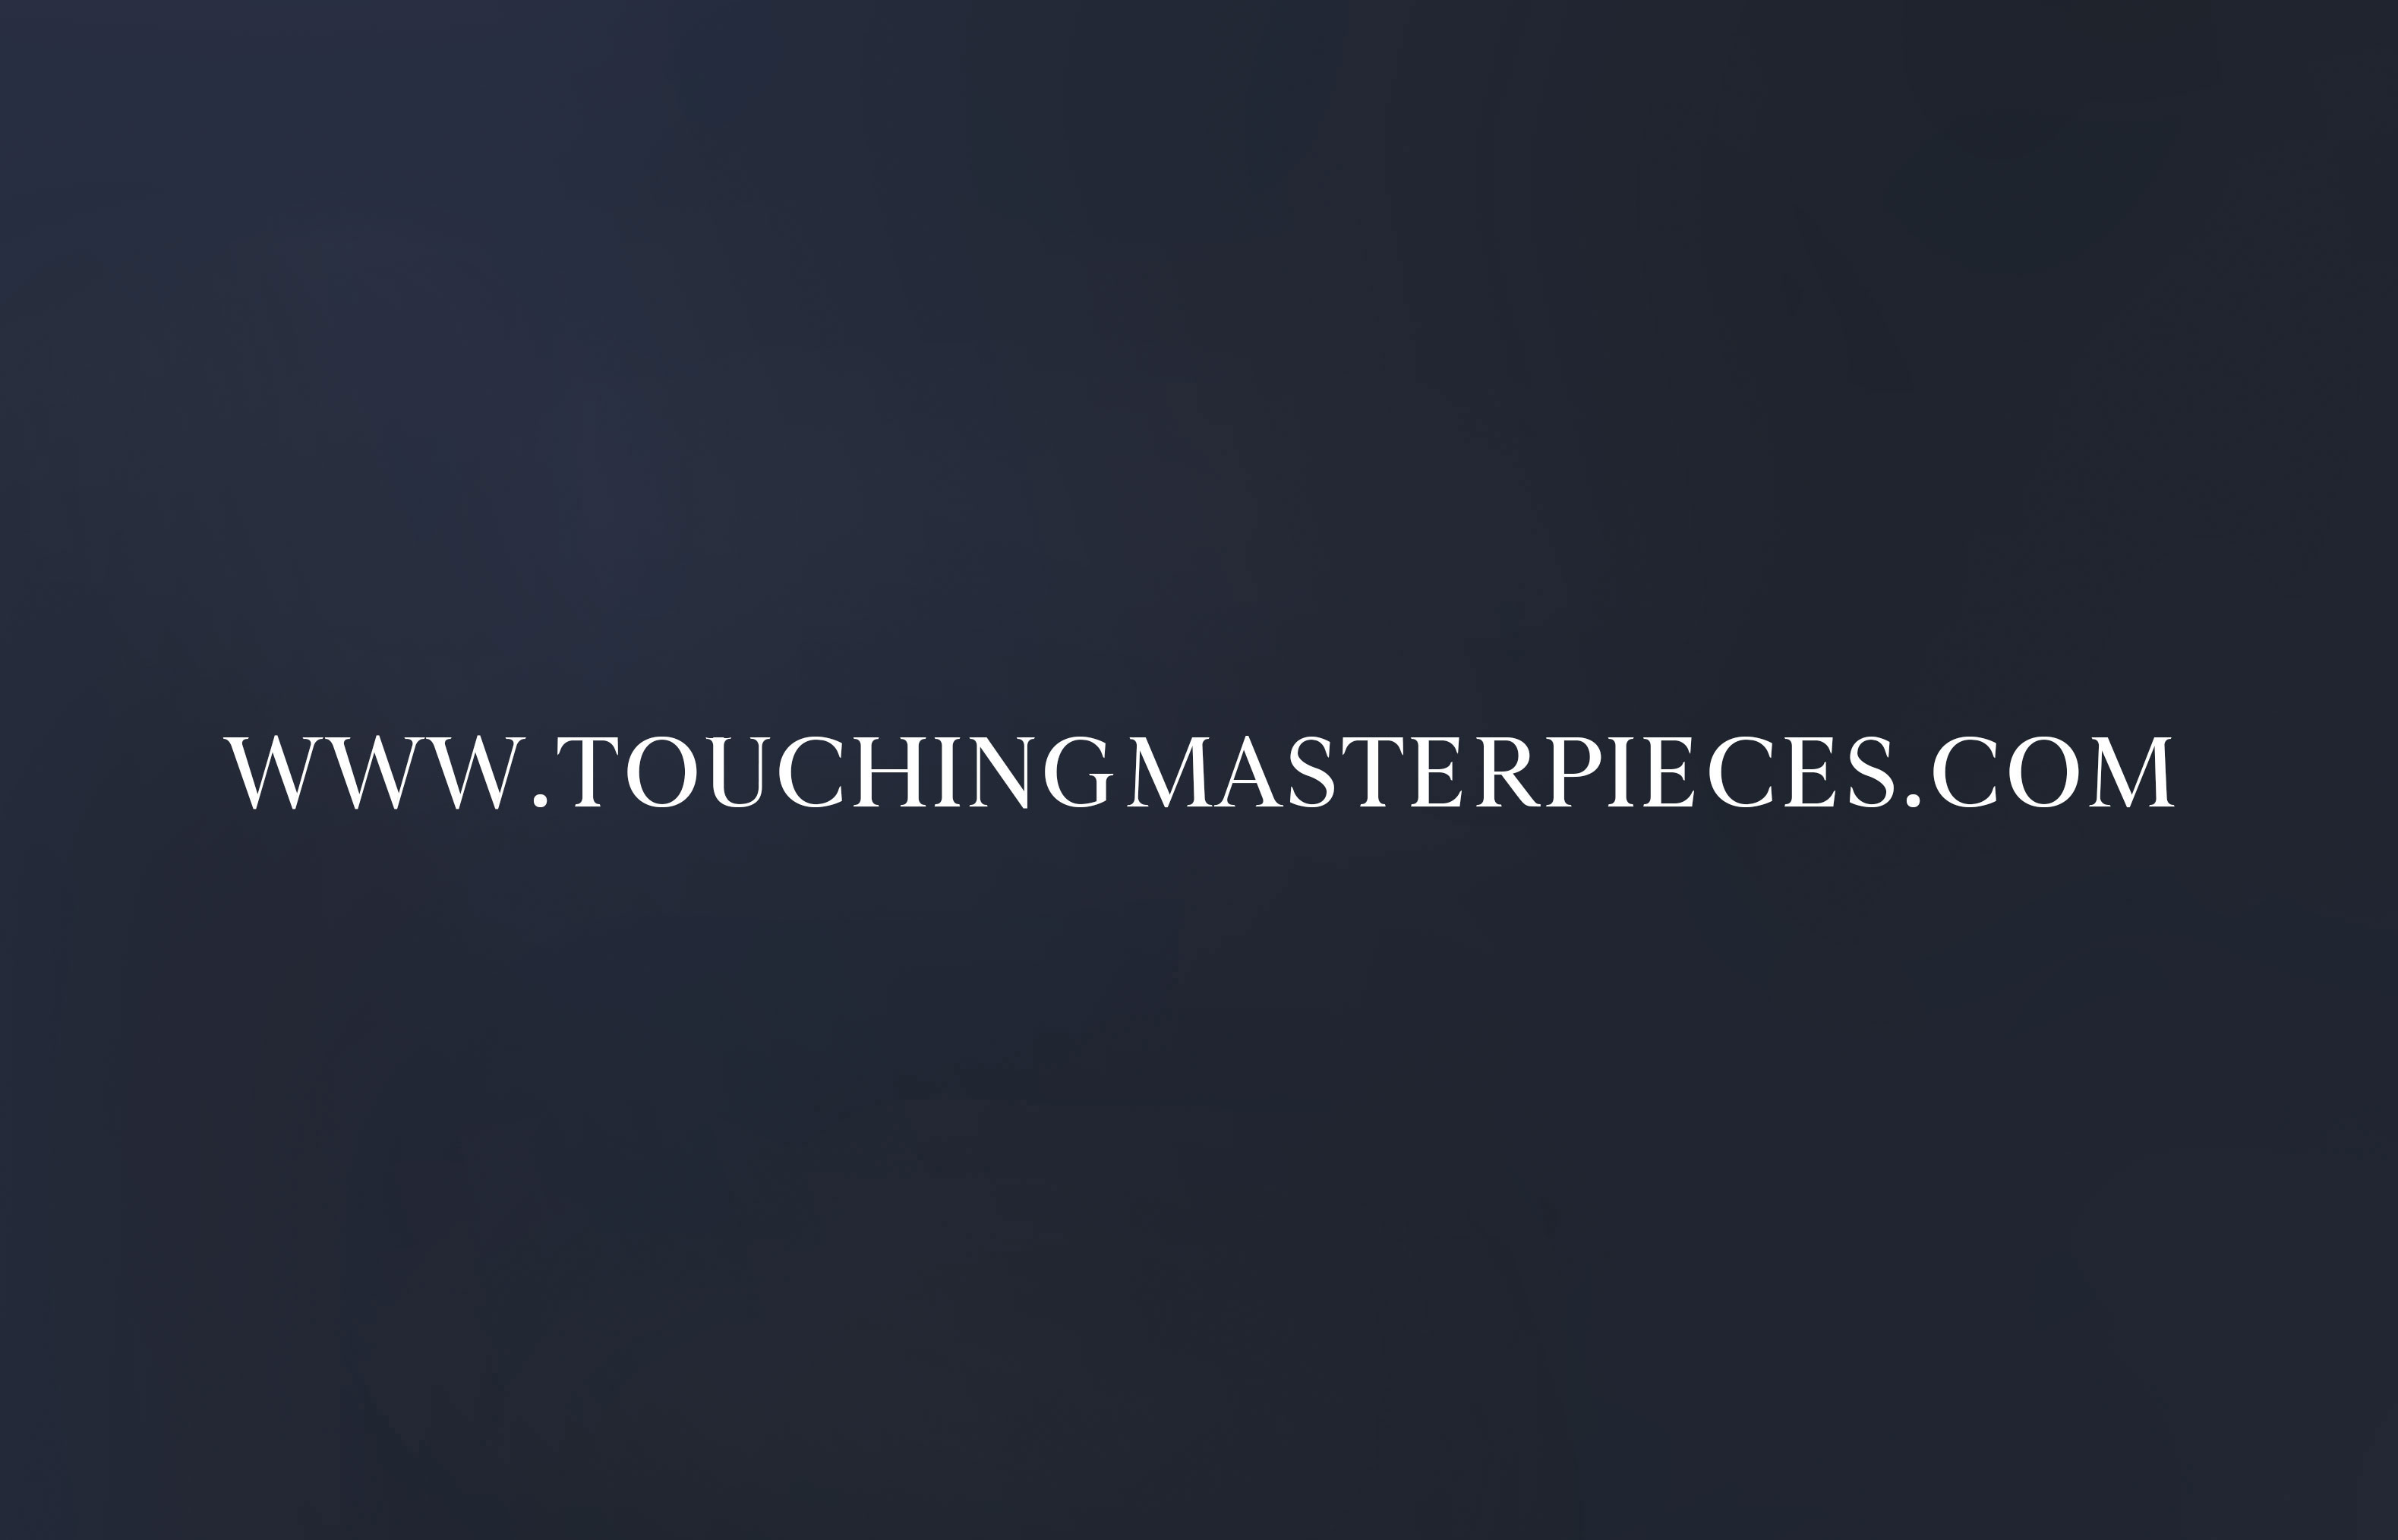 Touching-Masterpieces-WEB